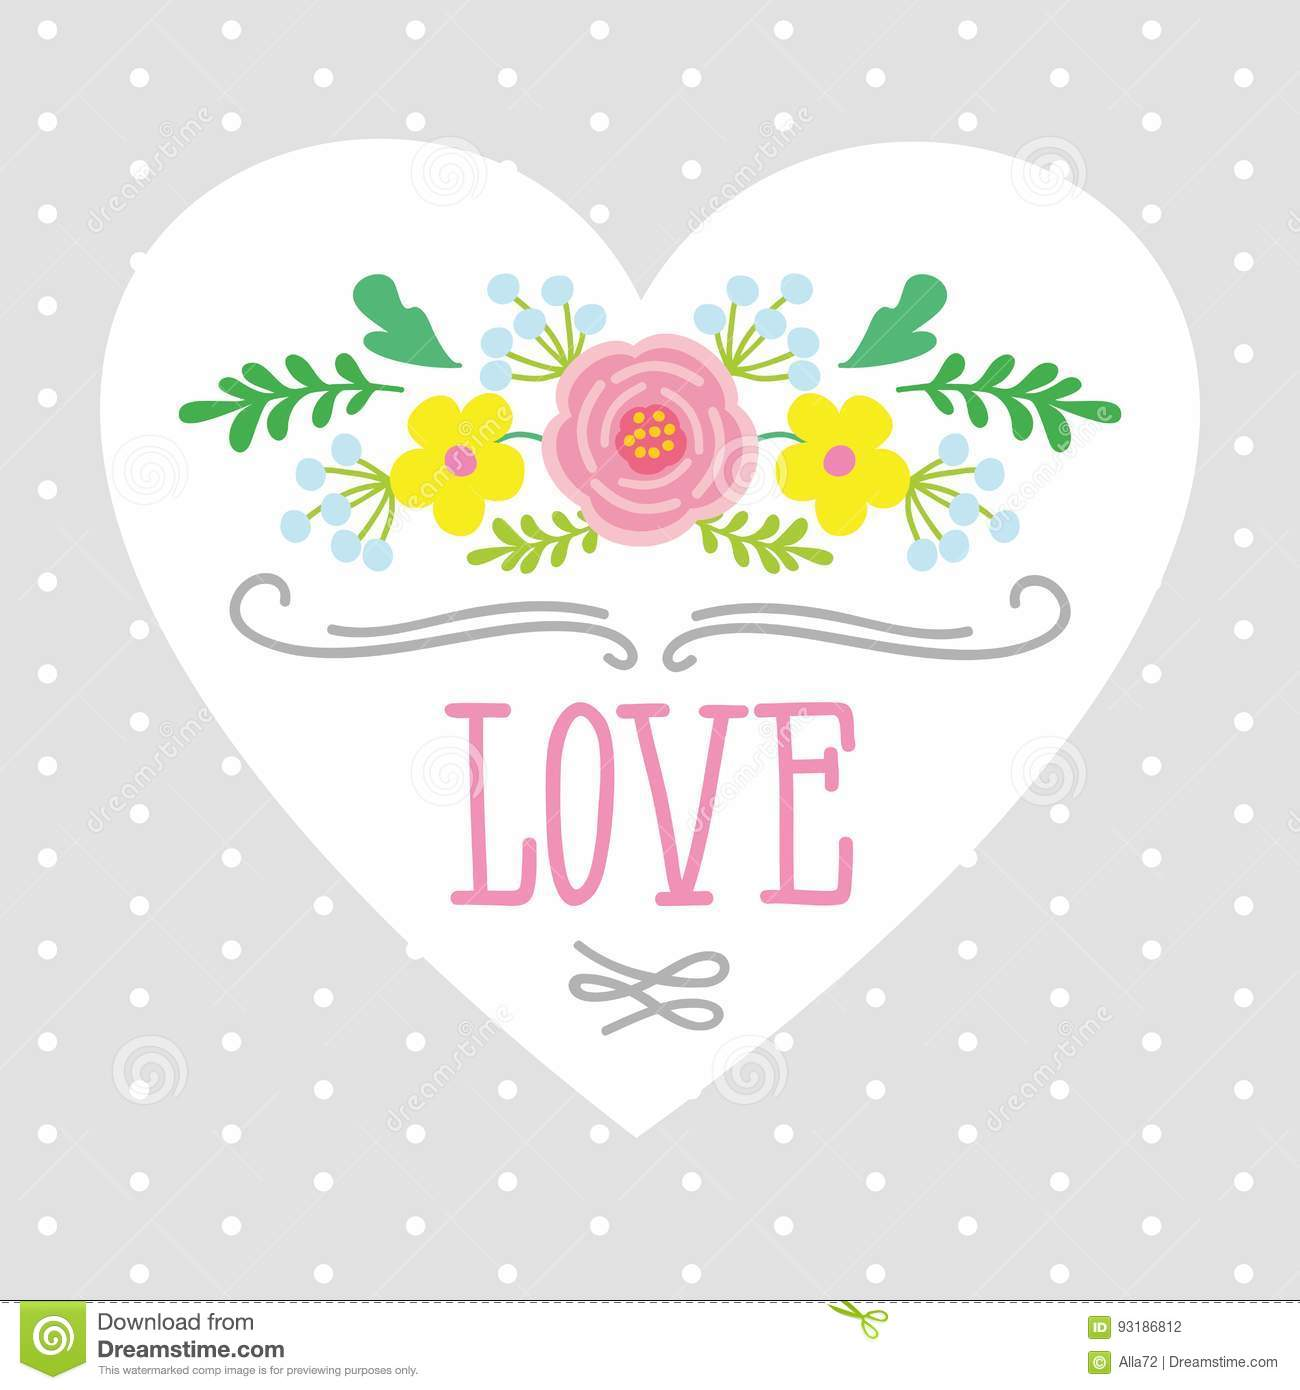 Illustration Of Heart With The Word Love Framed By Flowers. Template ...